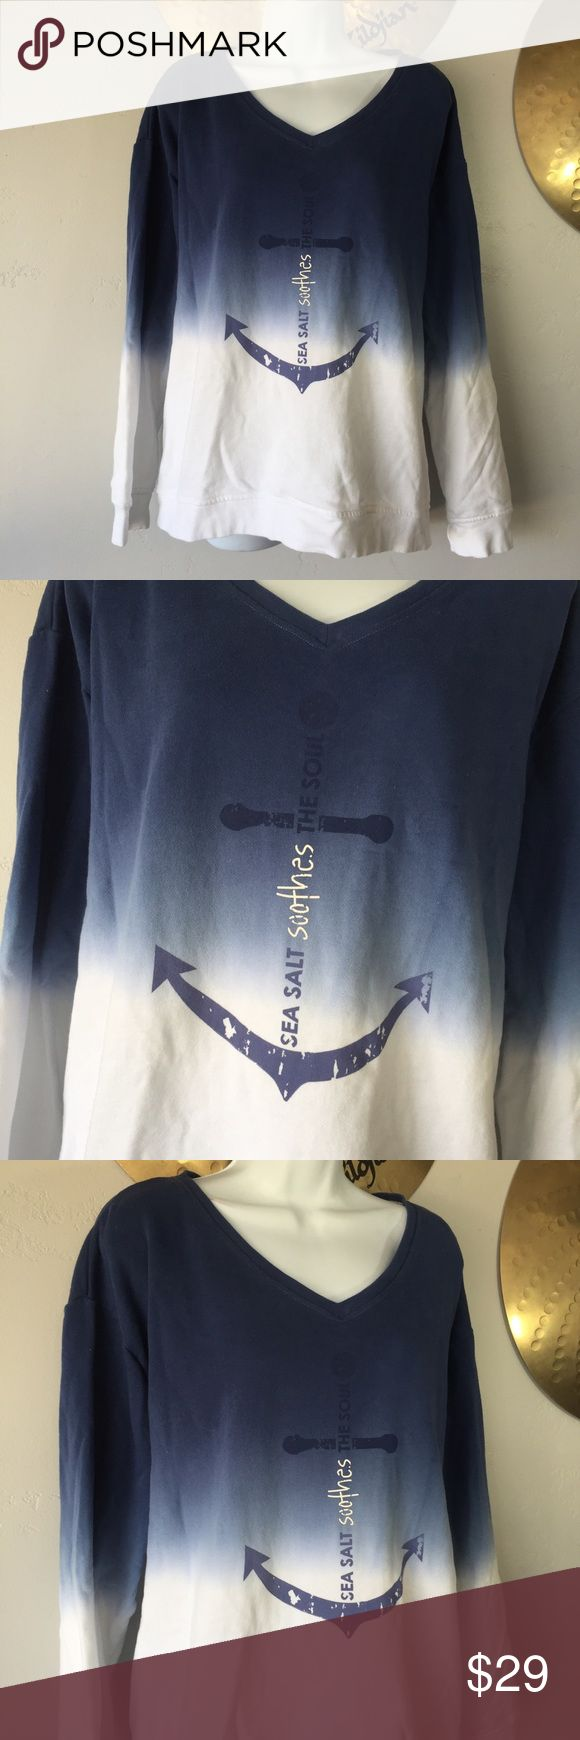 "Peace Love World Dip Dye Terry Knit Sweatshirt Peace Love World Dip Dye French Terry Knit V Neck Blue Sea 3X  Nice preowned condition.   Says ""Sea salt soothes the soul on front""   Size tag is missing but measures asa 3X size. Please check measurements below before purchasing.   Armpit to armpit- 32"" Length- 27.5"" Peace Love World Tops Sweatshirts & Hoodies"